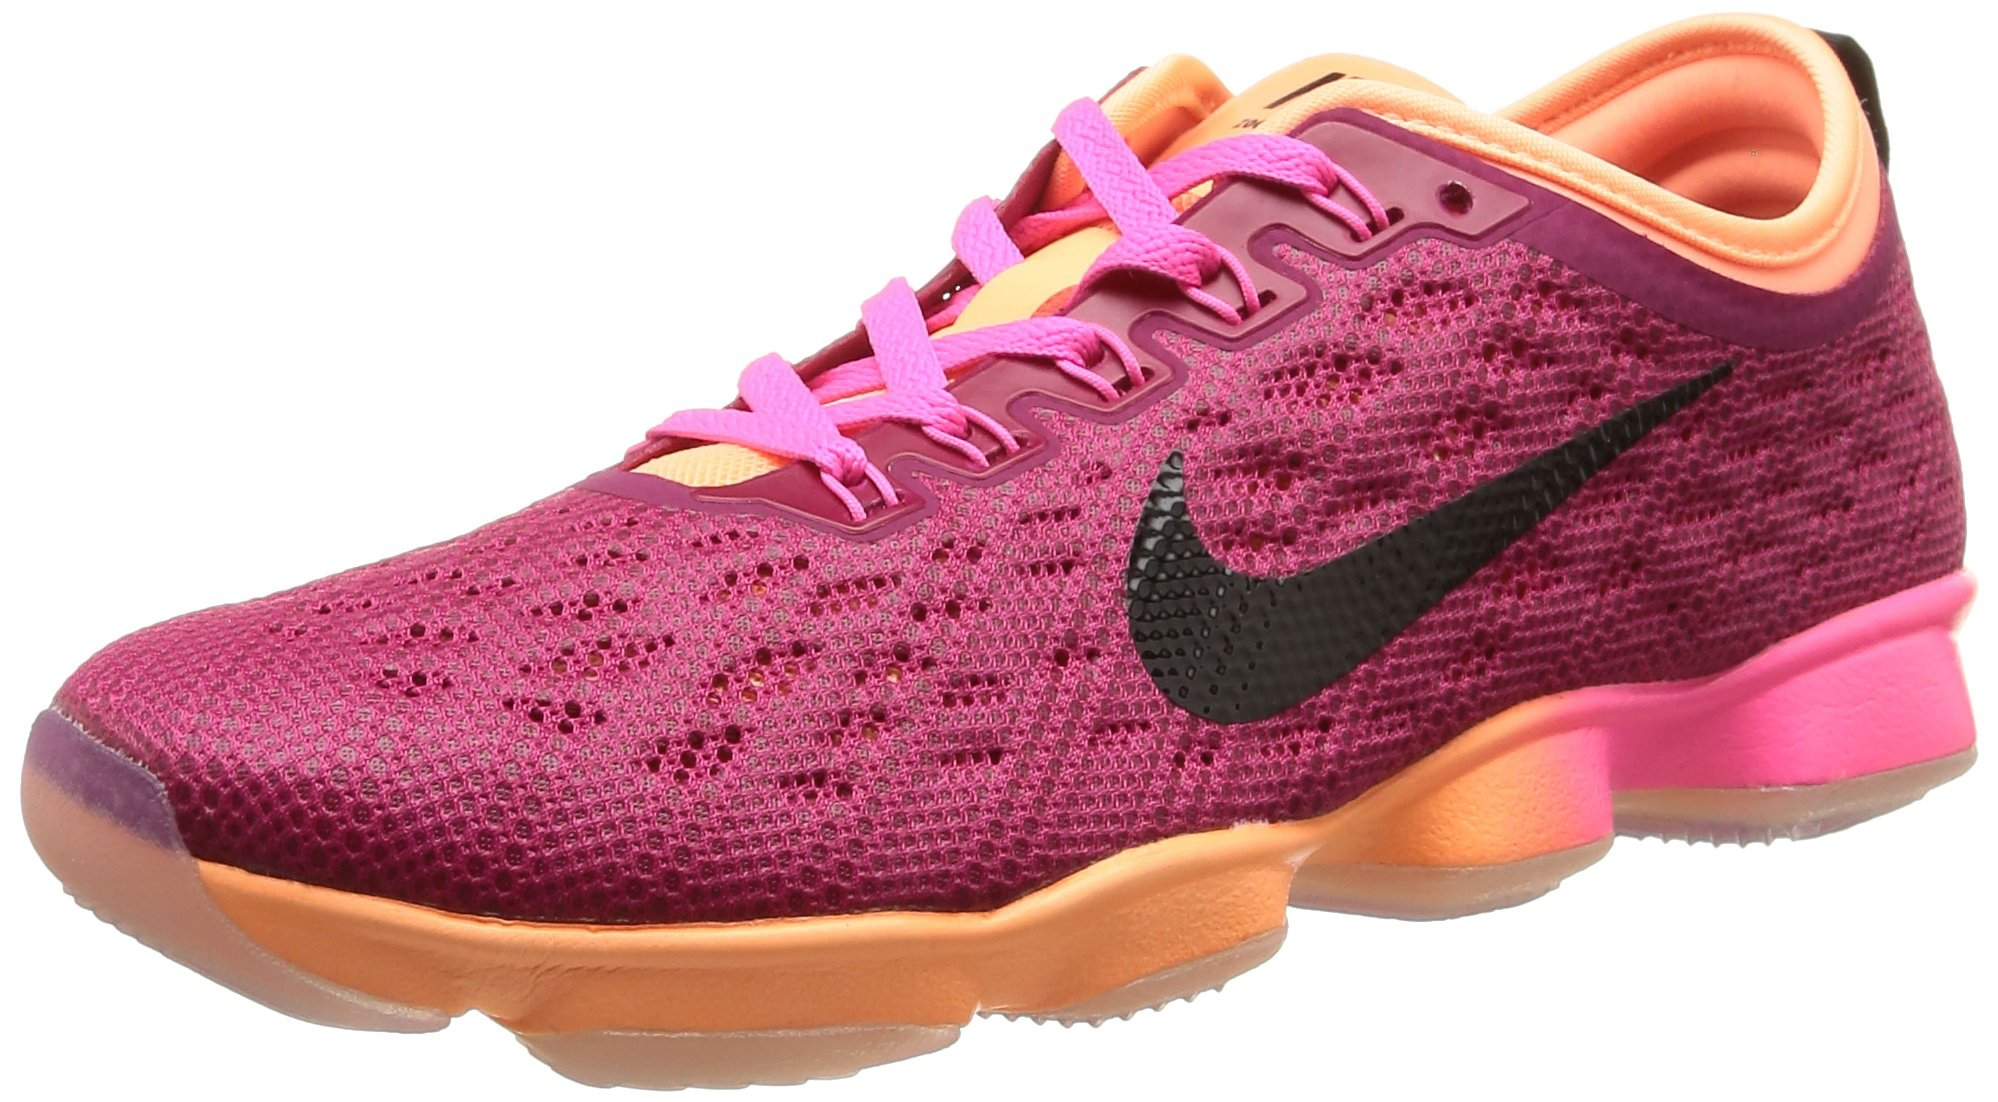 new style 50815 c93a7 Galleon - NIKE Womens Zoom Fit Agility Running Trainers 684984 Sneakers  Shoes (US 6.5, Sport Fuschia Black Sunset Glow Pink Power 603)